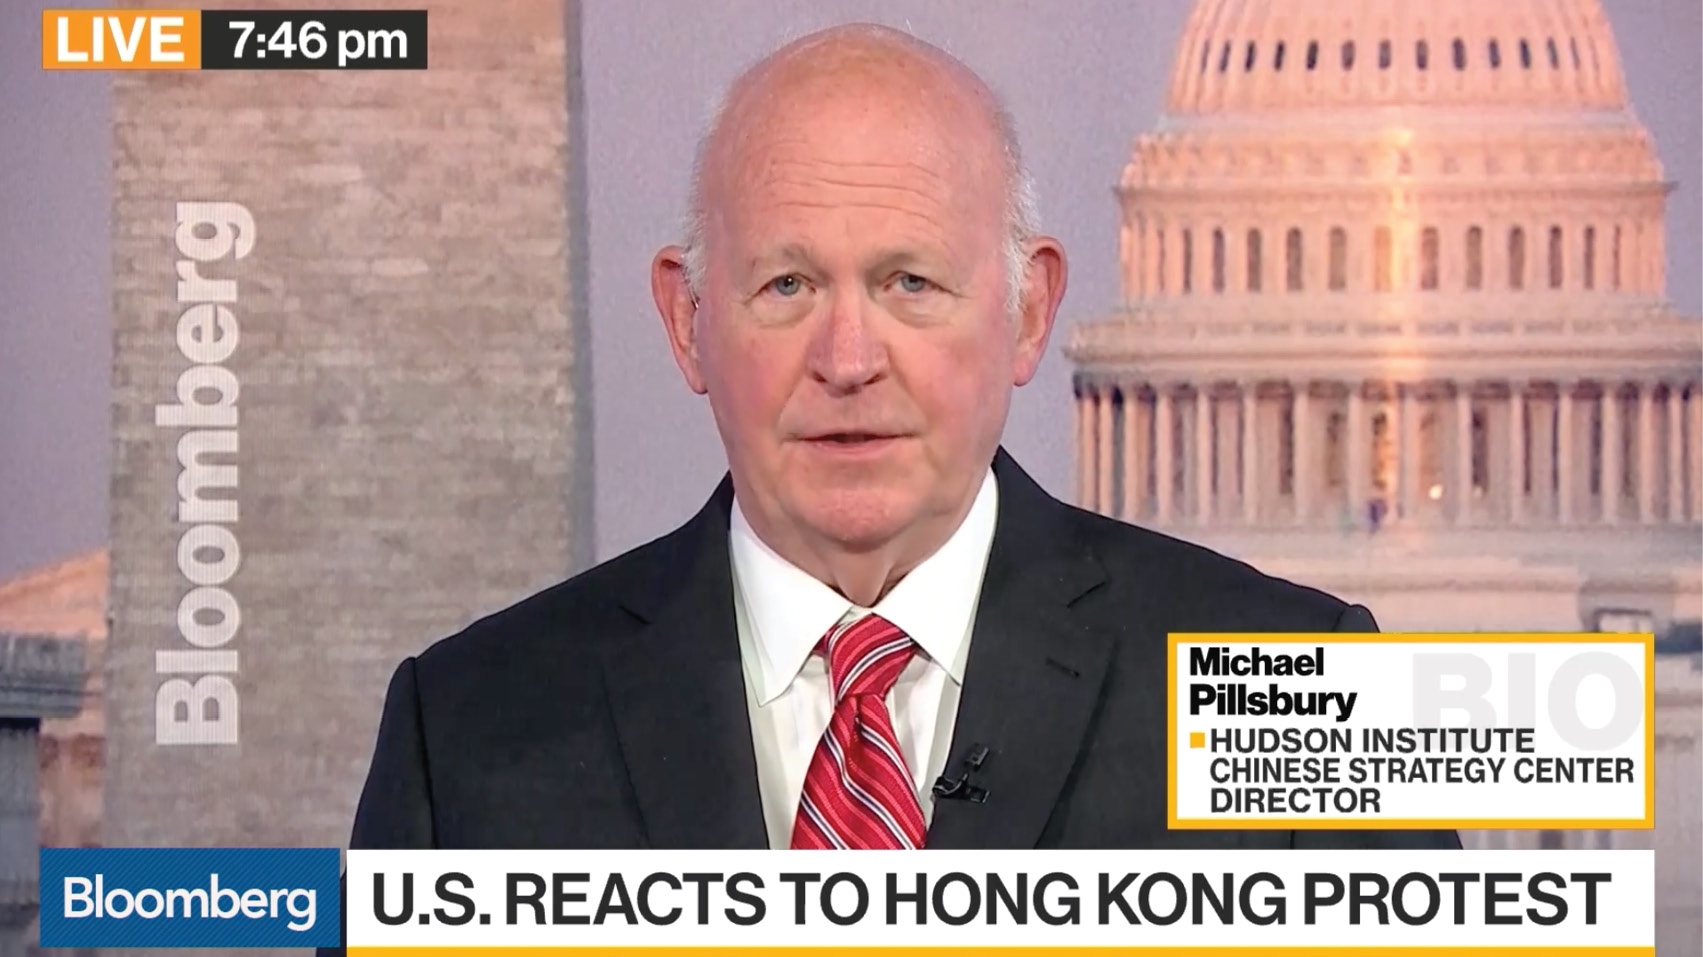 Michael Pillsbury discusses President Trump's comments on Hong Kong-China relations, the U.S.-China trade negotiations, and the future of U.S.-Hong Kong relations.